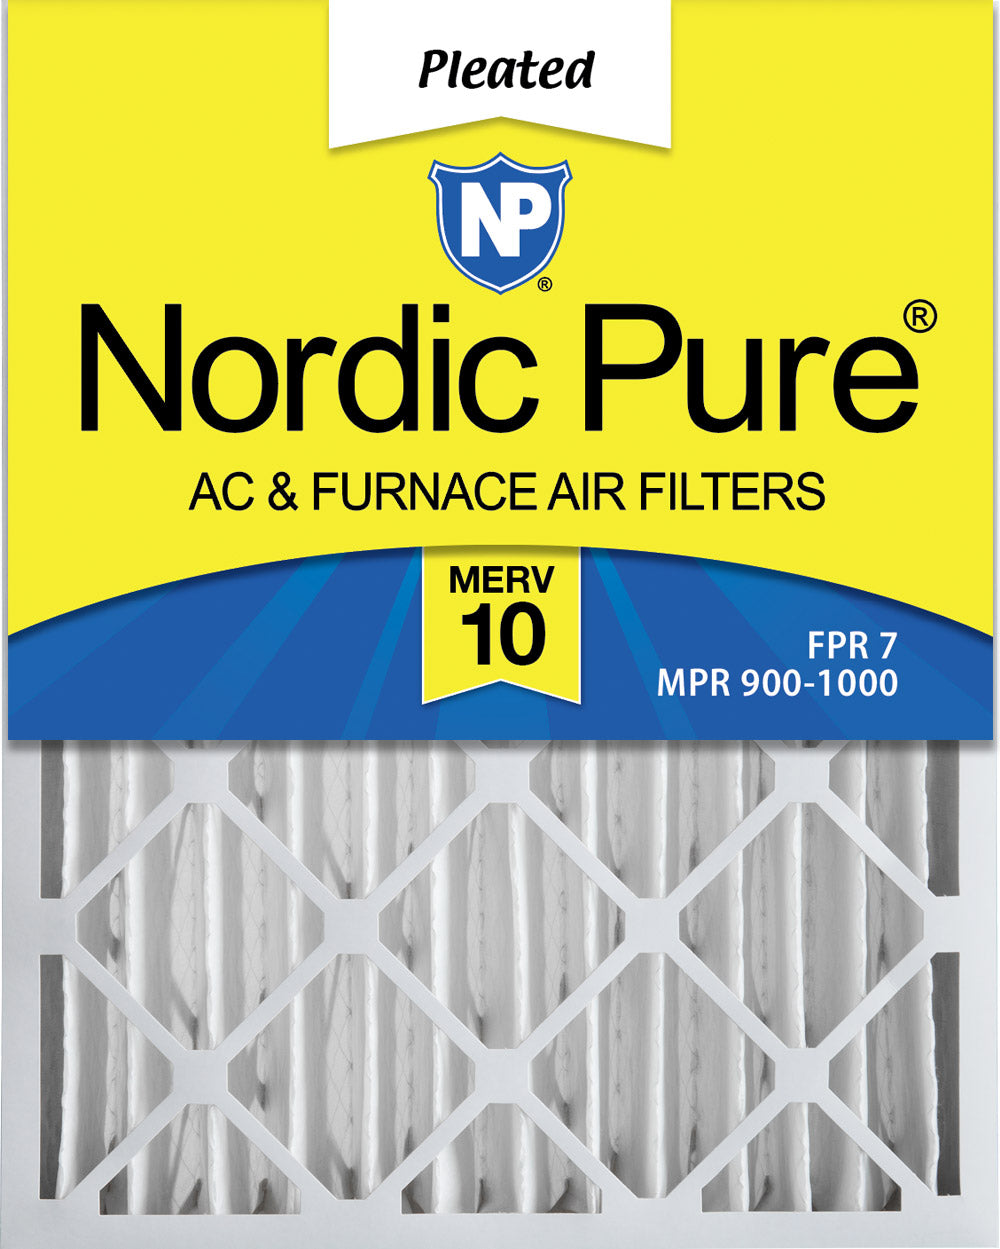 16x20x4 (3 5/8) Pleated MERV 10 Air Filters 1 Pack